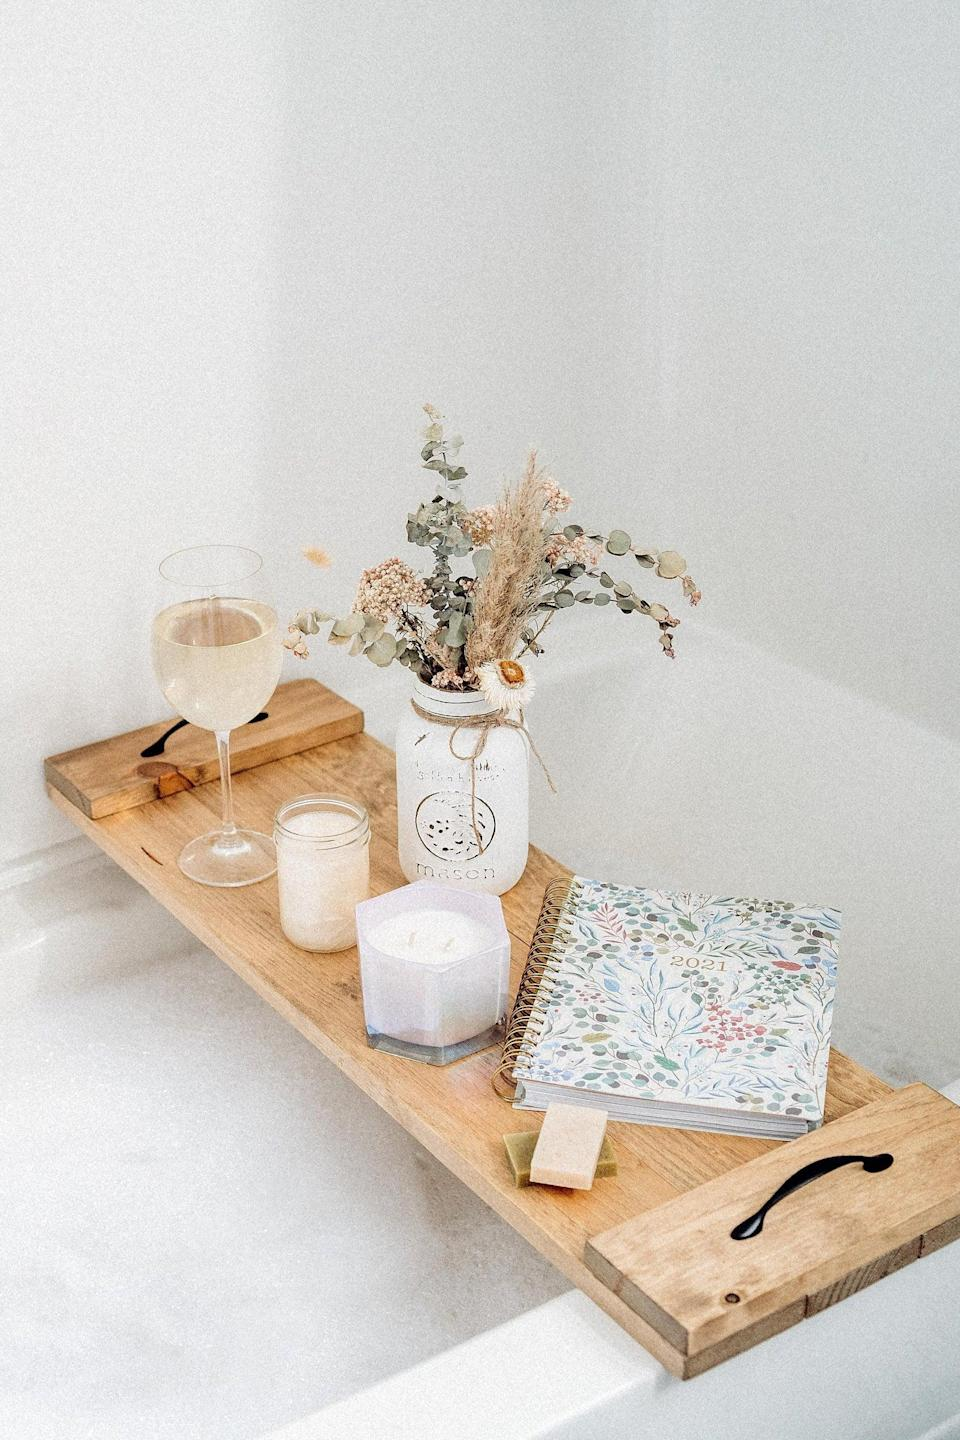 <p>She can take her bath time to the next level with this fun-filled <span>Bathtub Caddy</span> ($73 and up). She can grab a glass of wine, a notebook, or her latest read and prepare to unwind after work.</p>